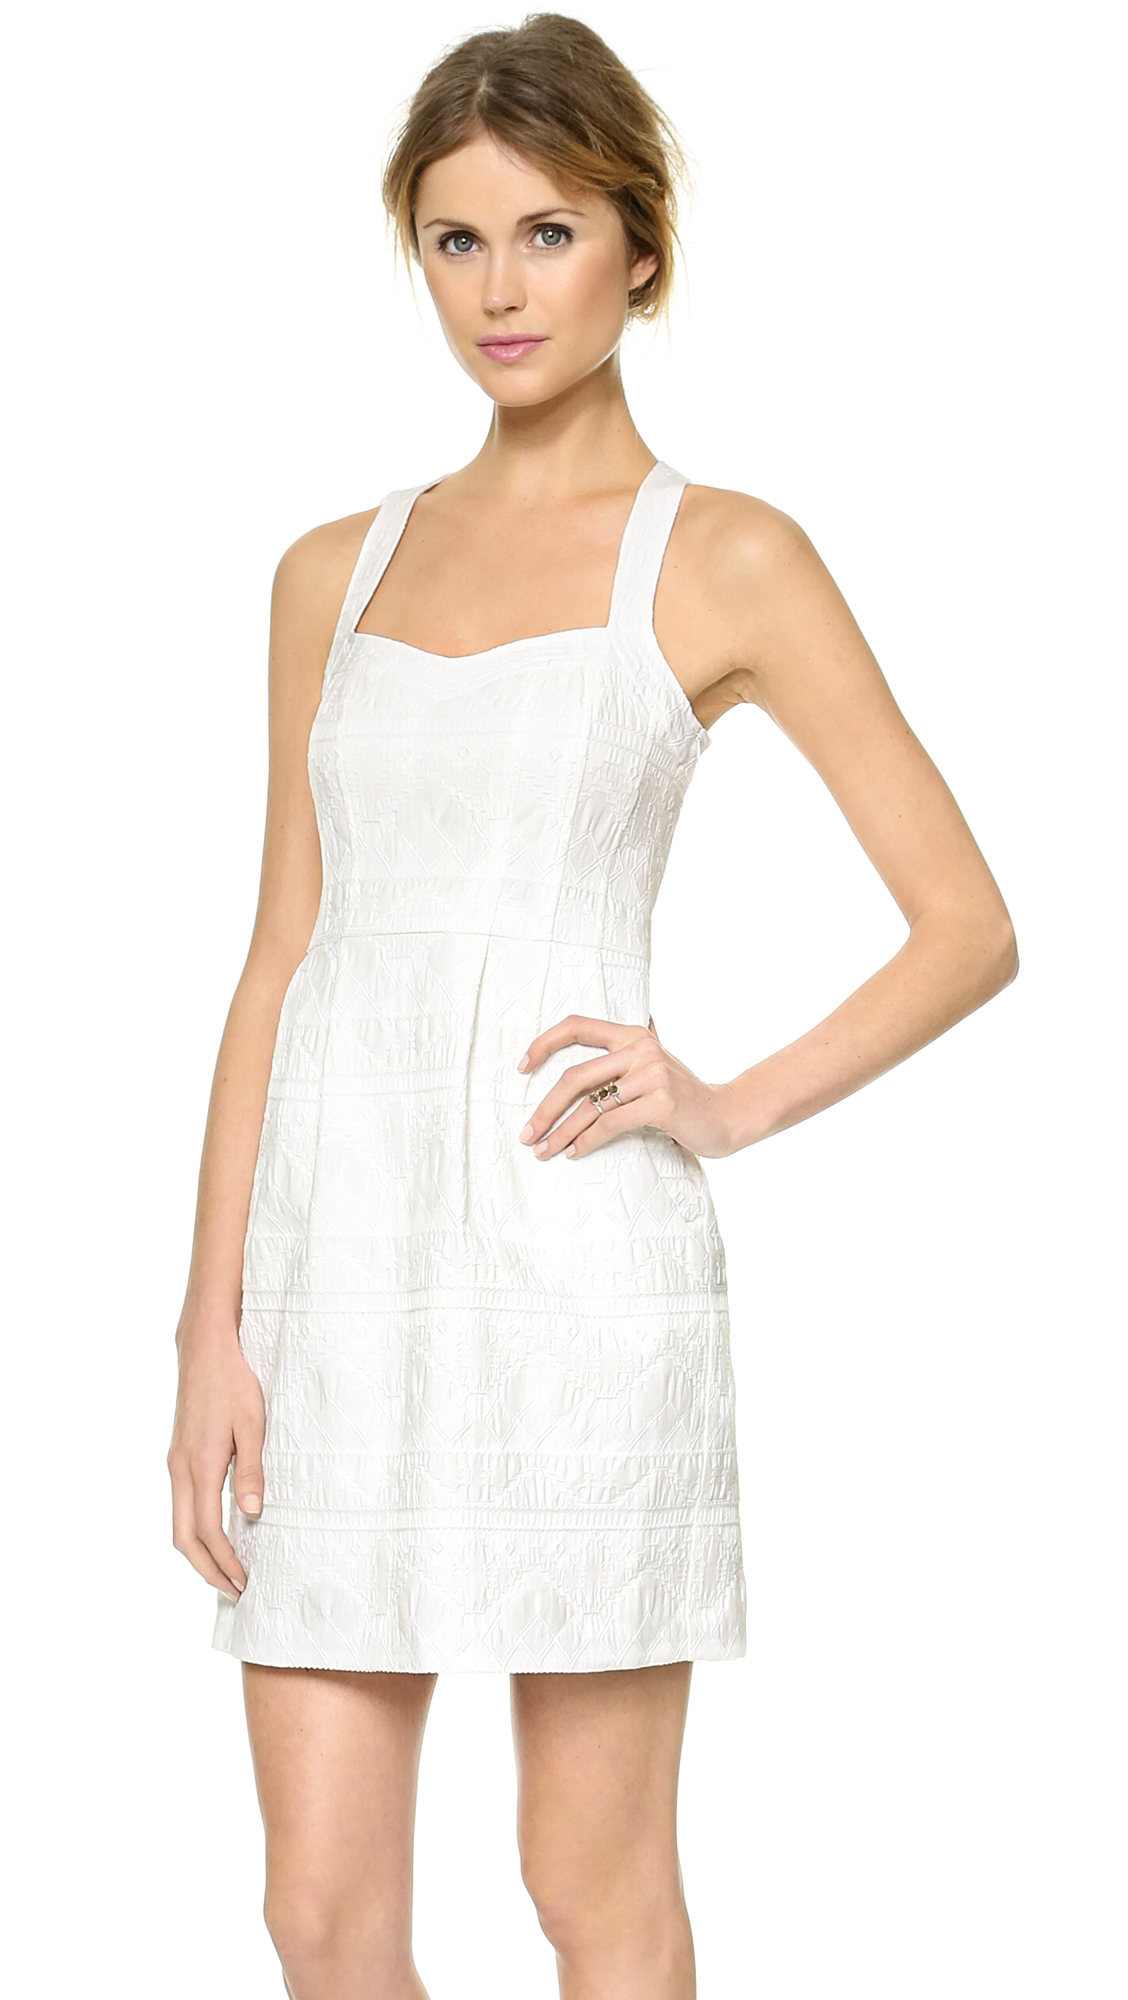 Lyst Nanette Lepore Sizzling Dress White In White